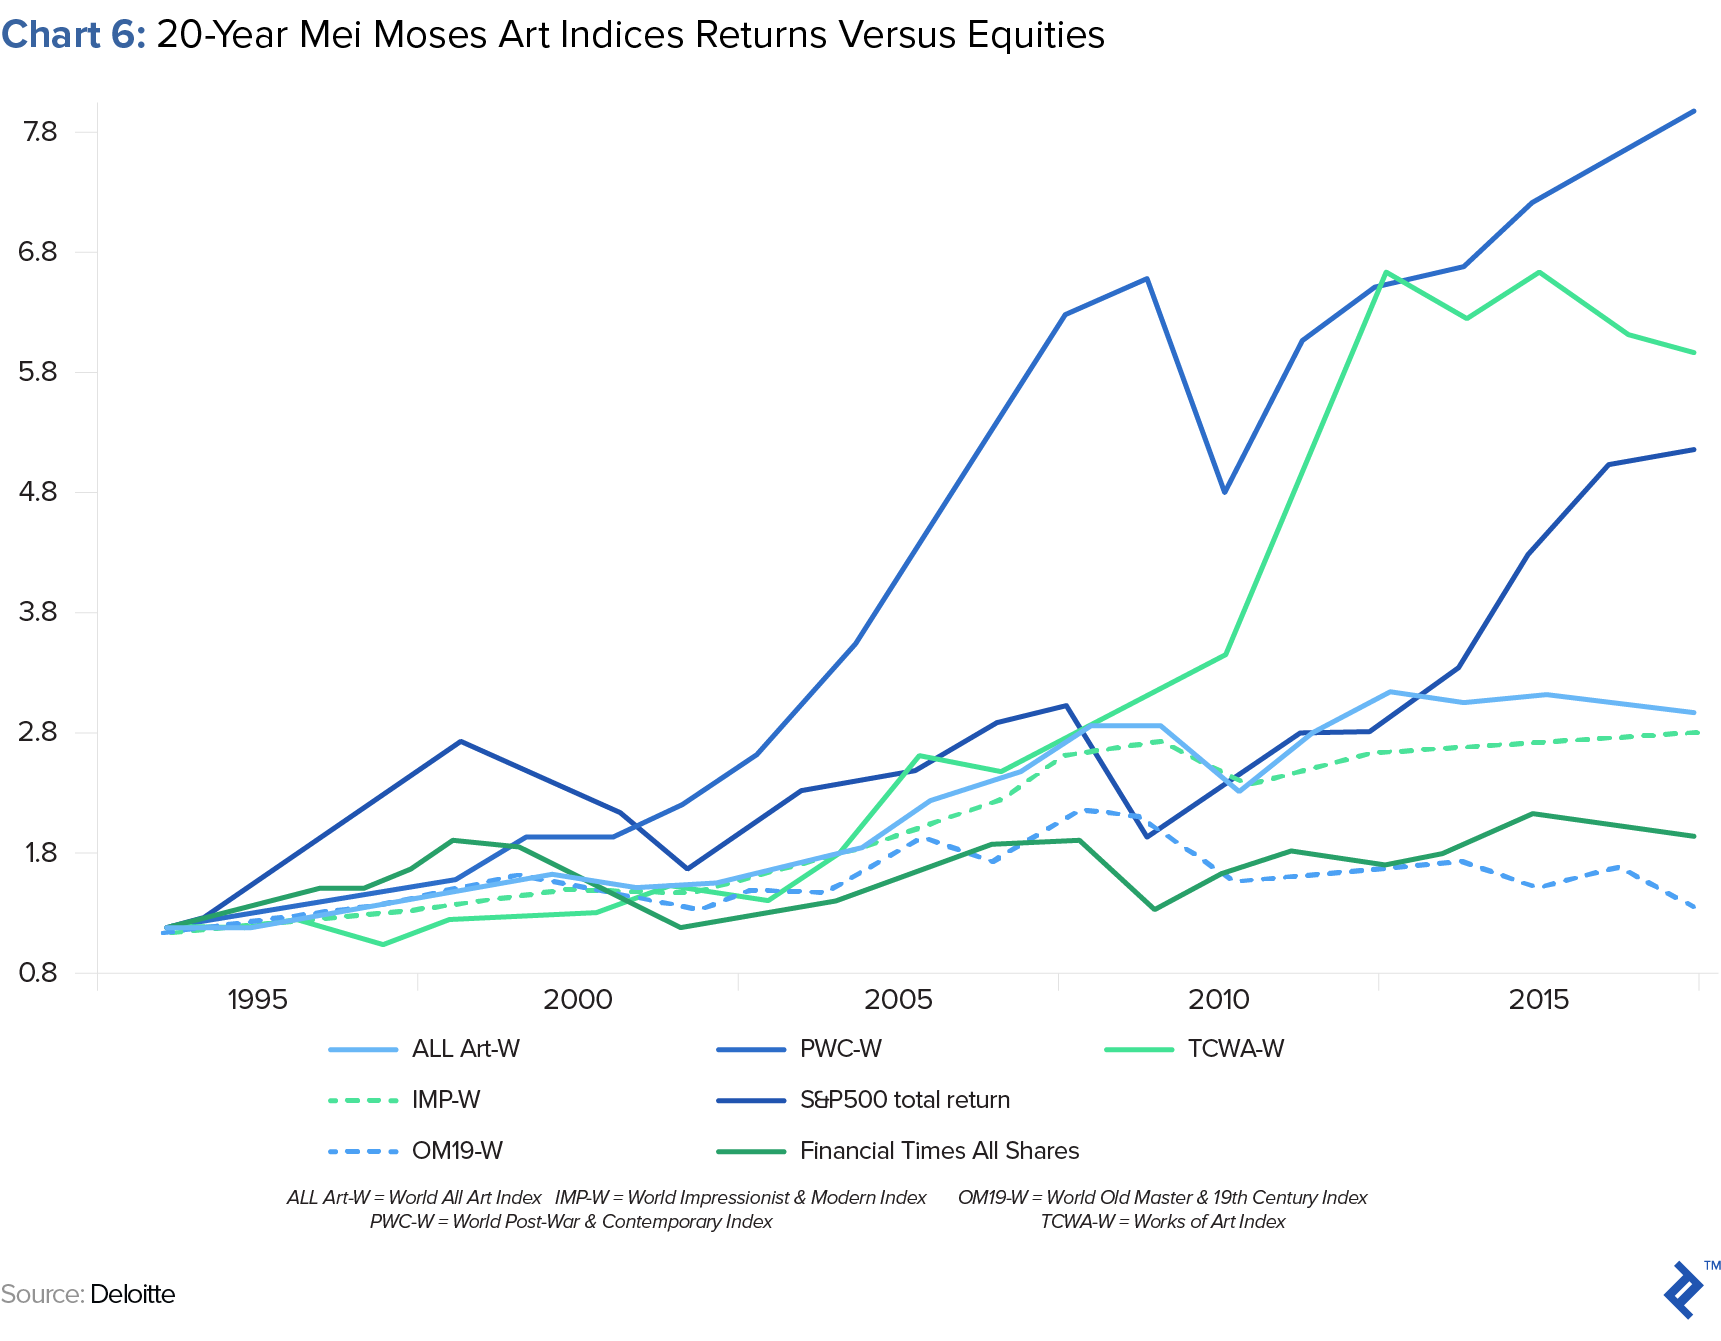 performance of art indices versus equities